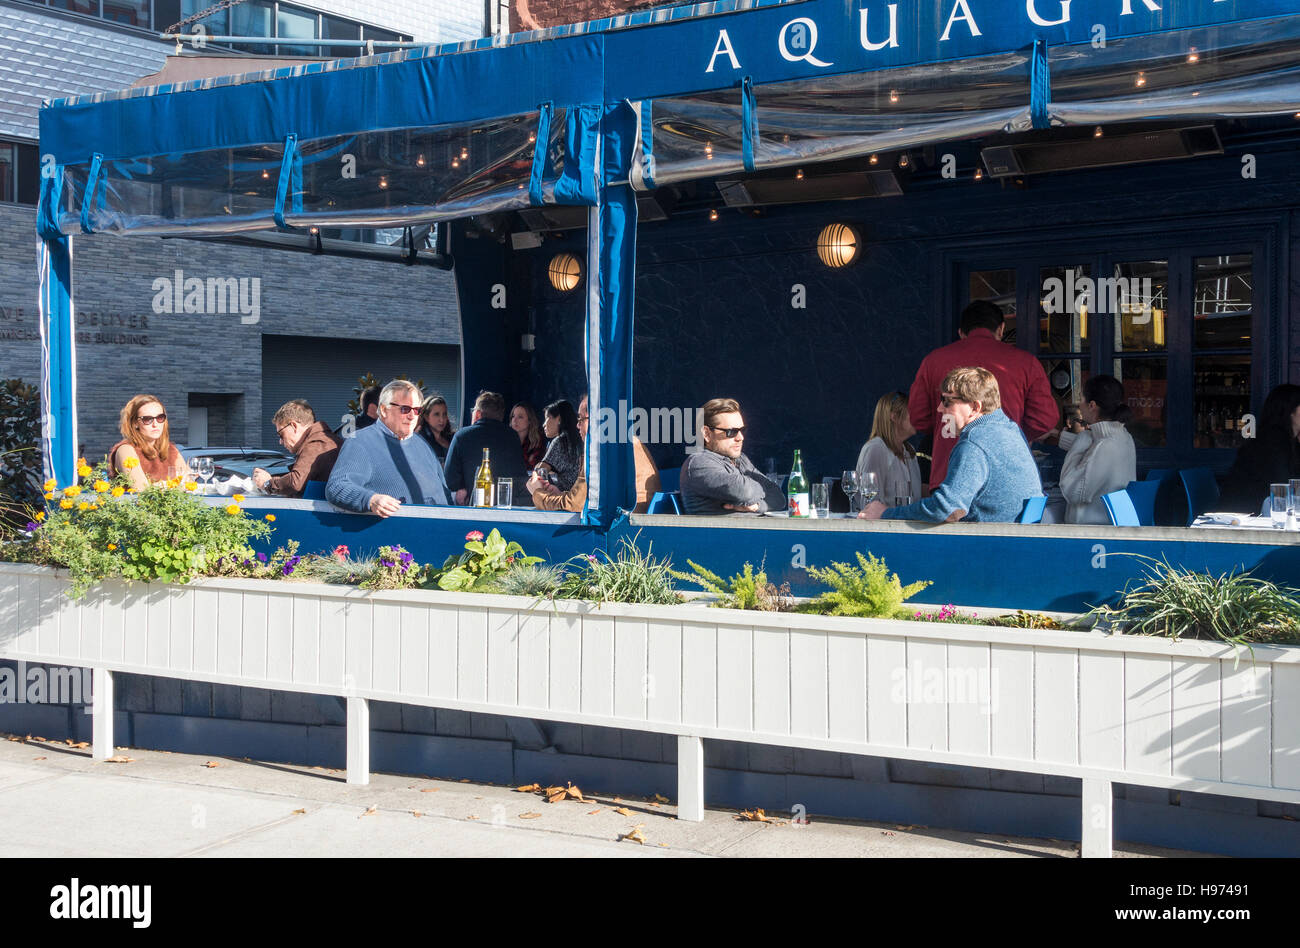 Diners on the terrace at Aquagrill seafood restaurant in Soho, New York City - Stock Image